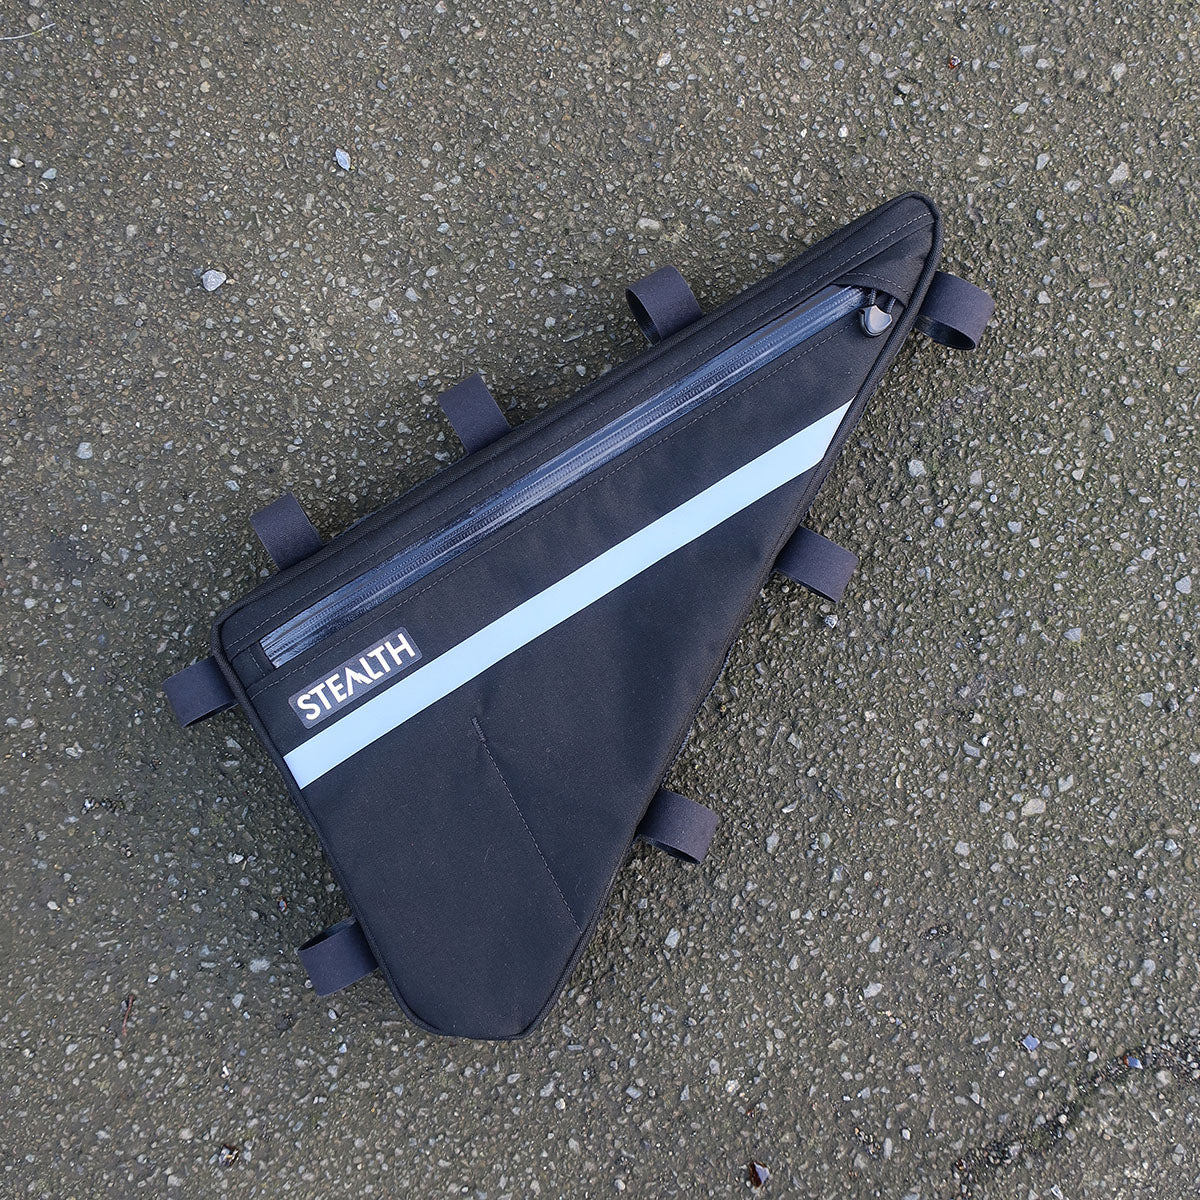 Single zip frame bag with vertical divider for bikepacking